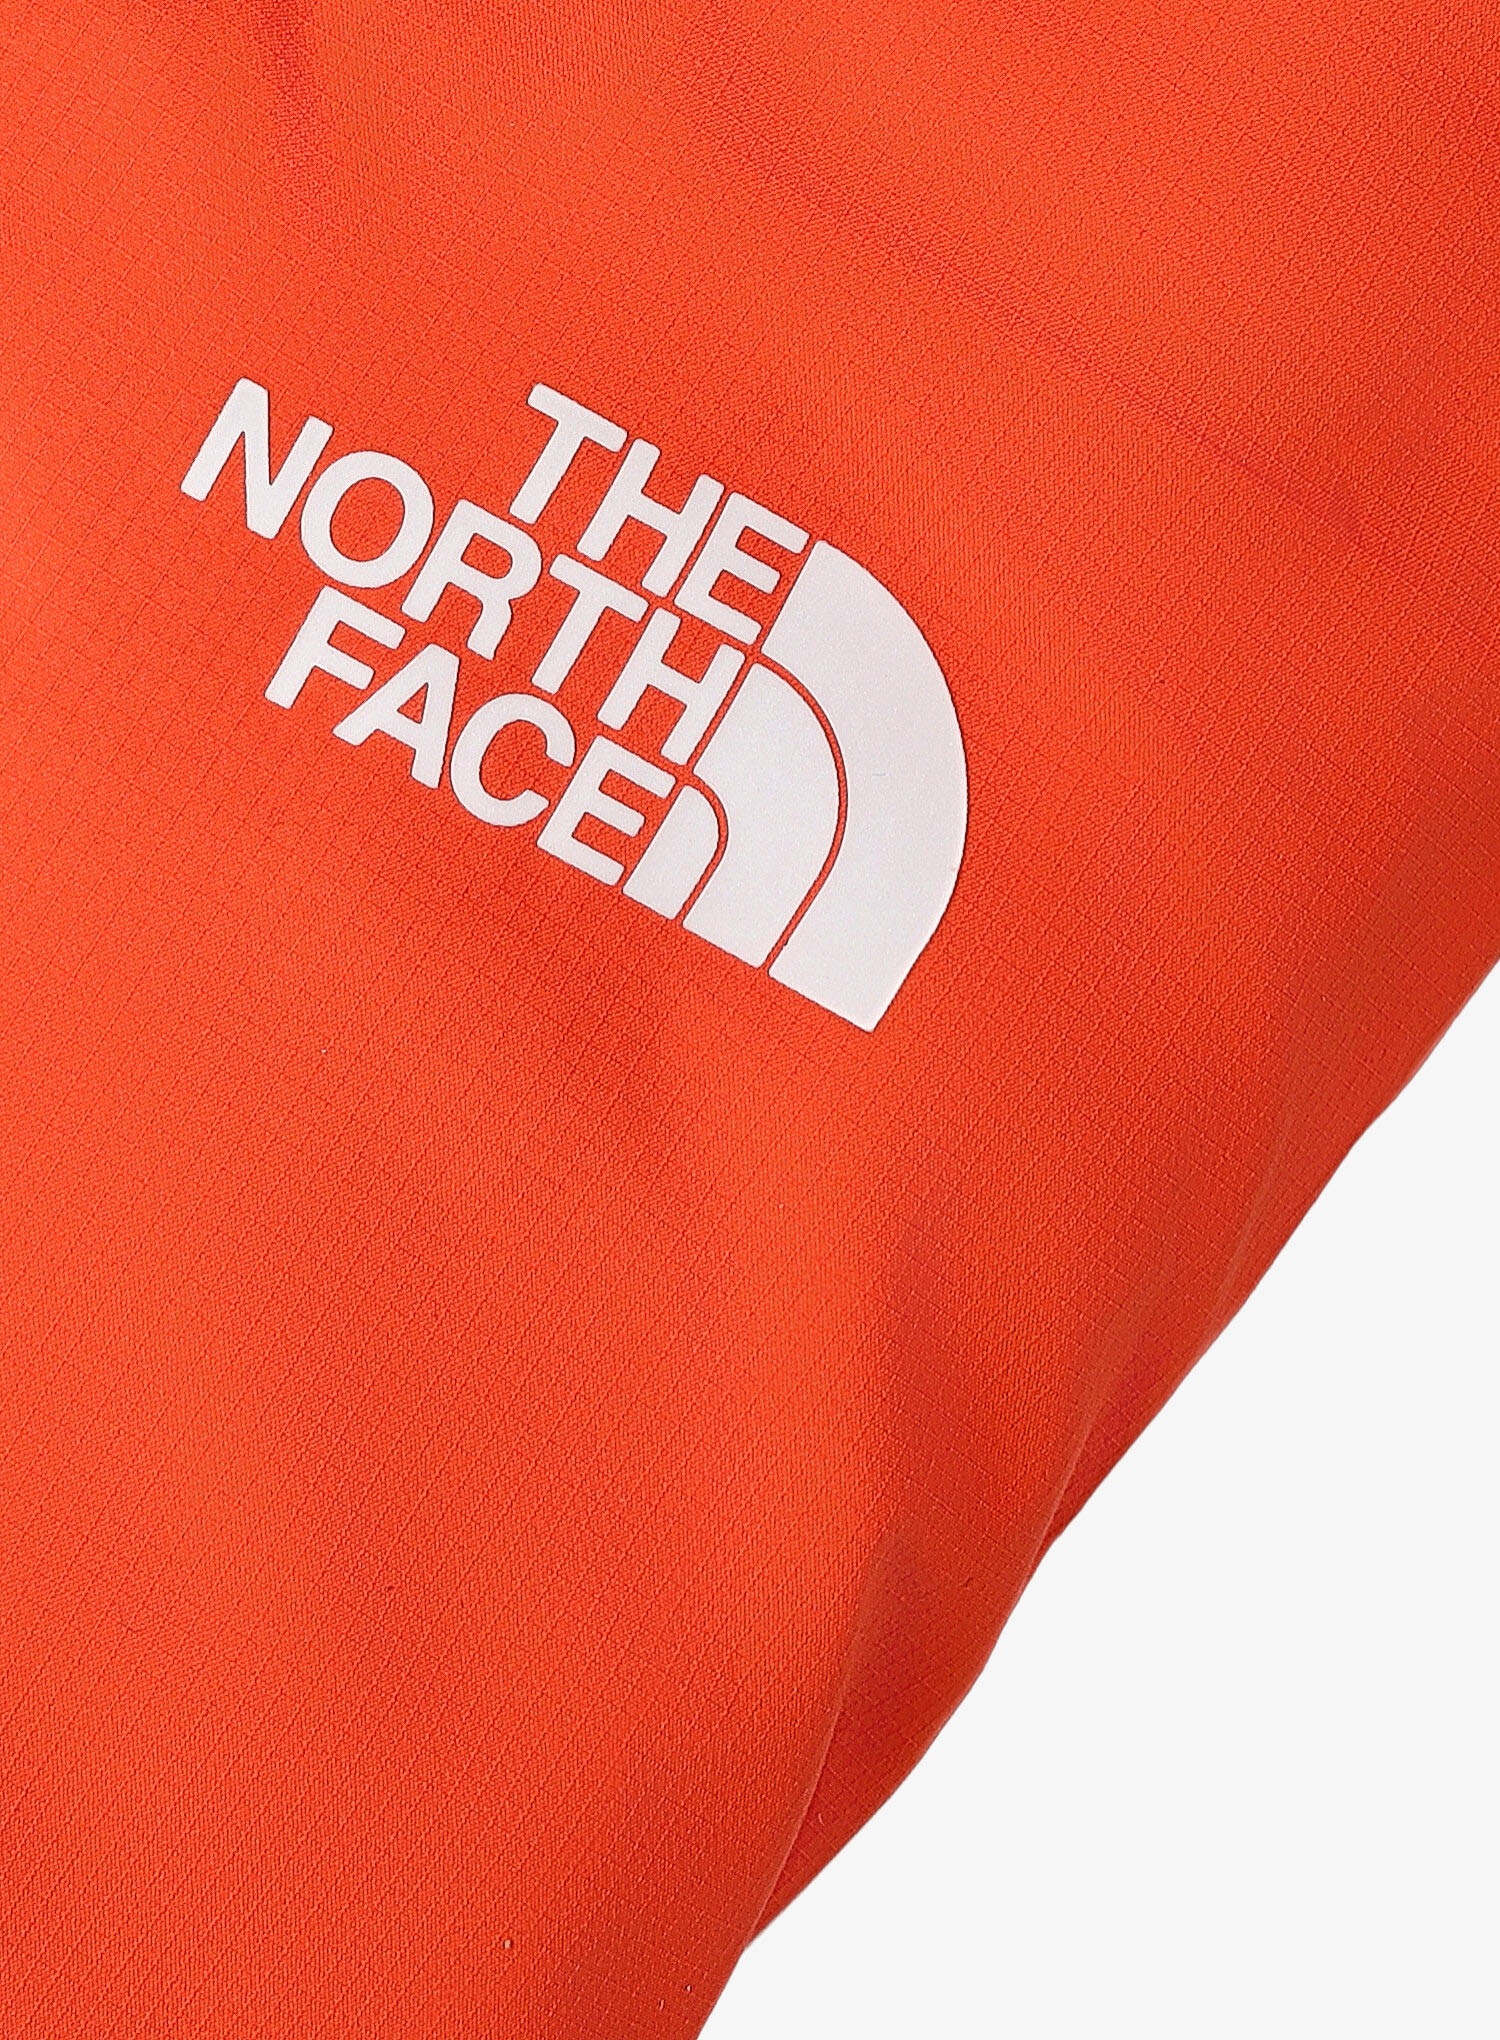 Łapawice The North Face AMK L5 Waterproof Shell Mit - flare - zdjęcie nr. 5